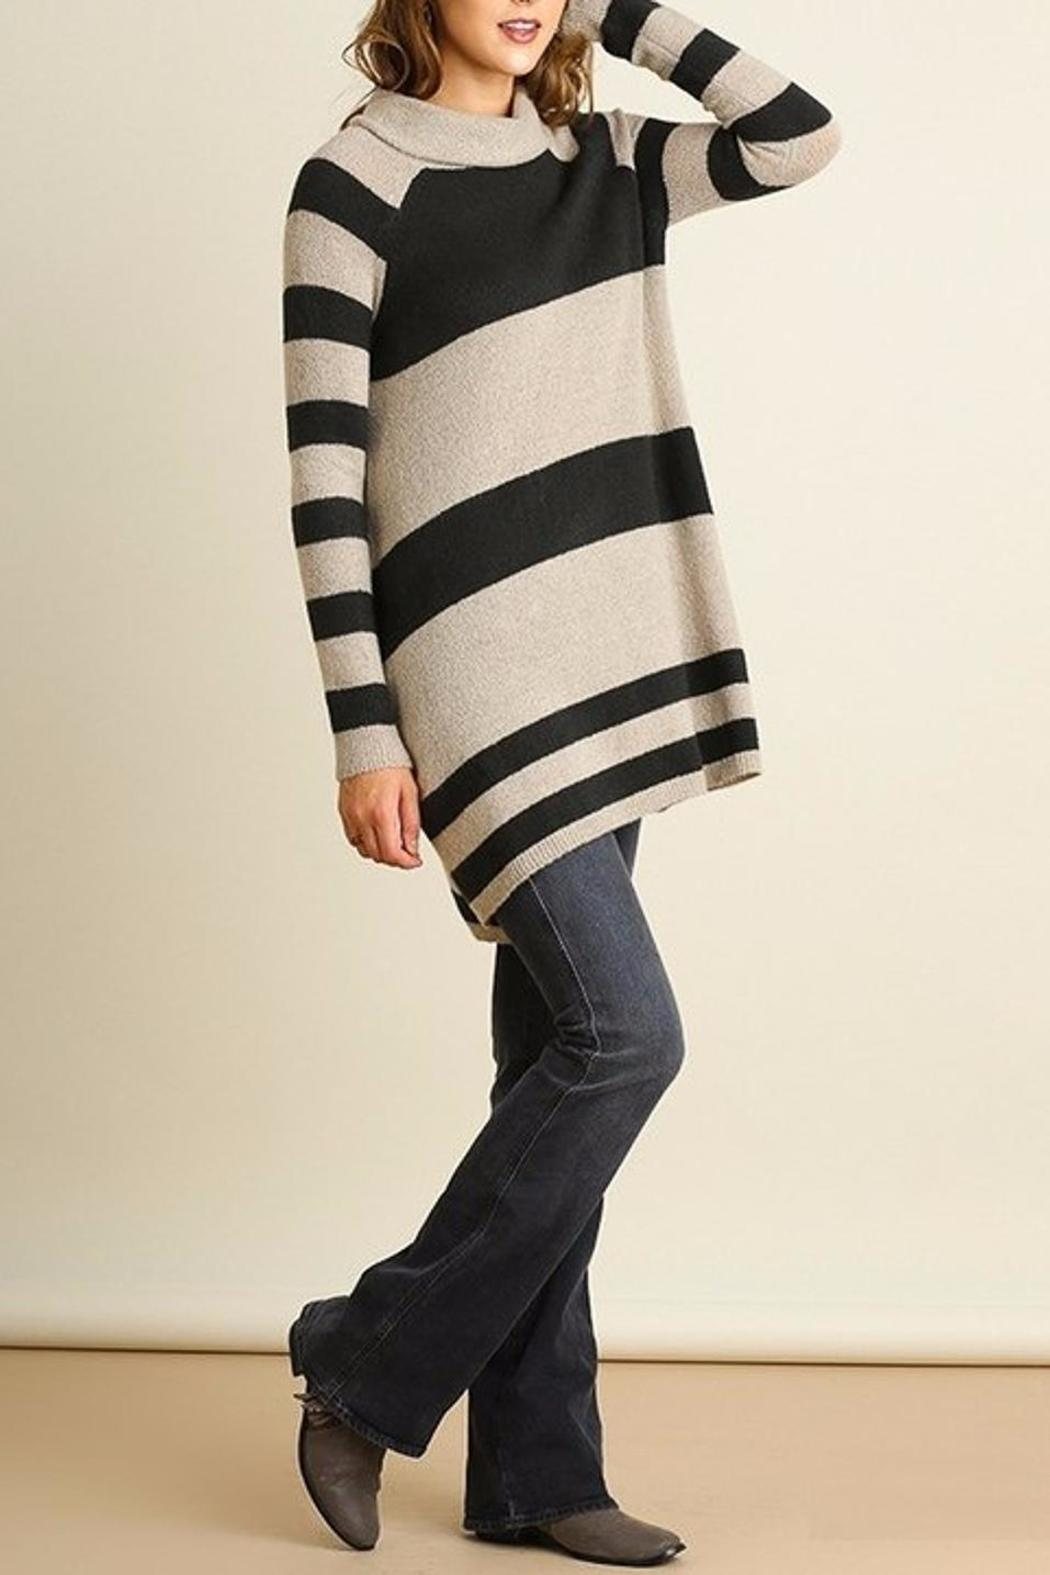 People Outfitter Stripe Knit Tunic - Back Cropped Image